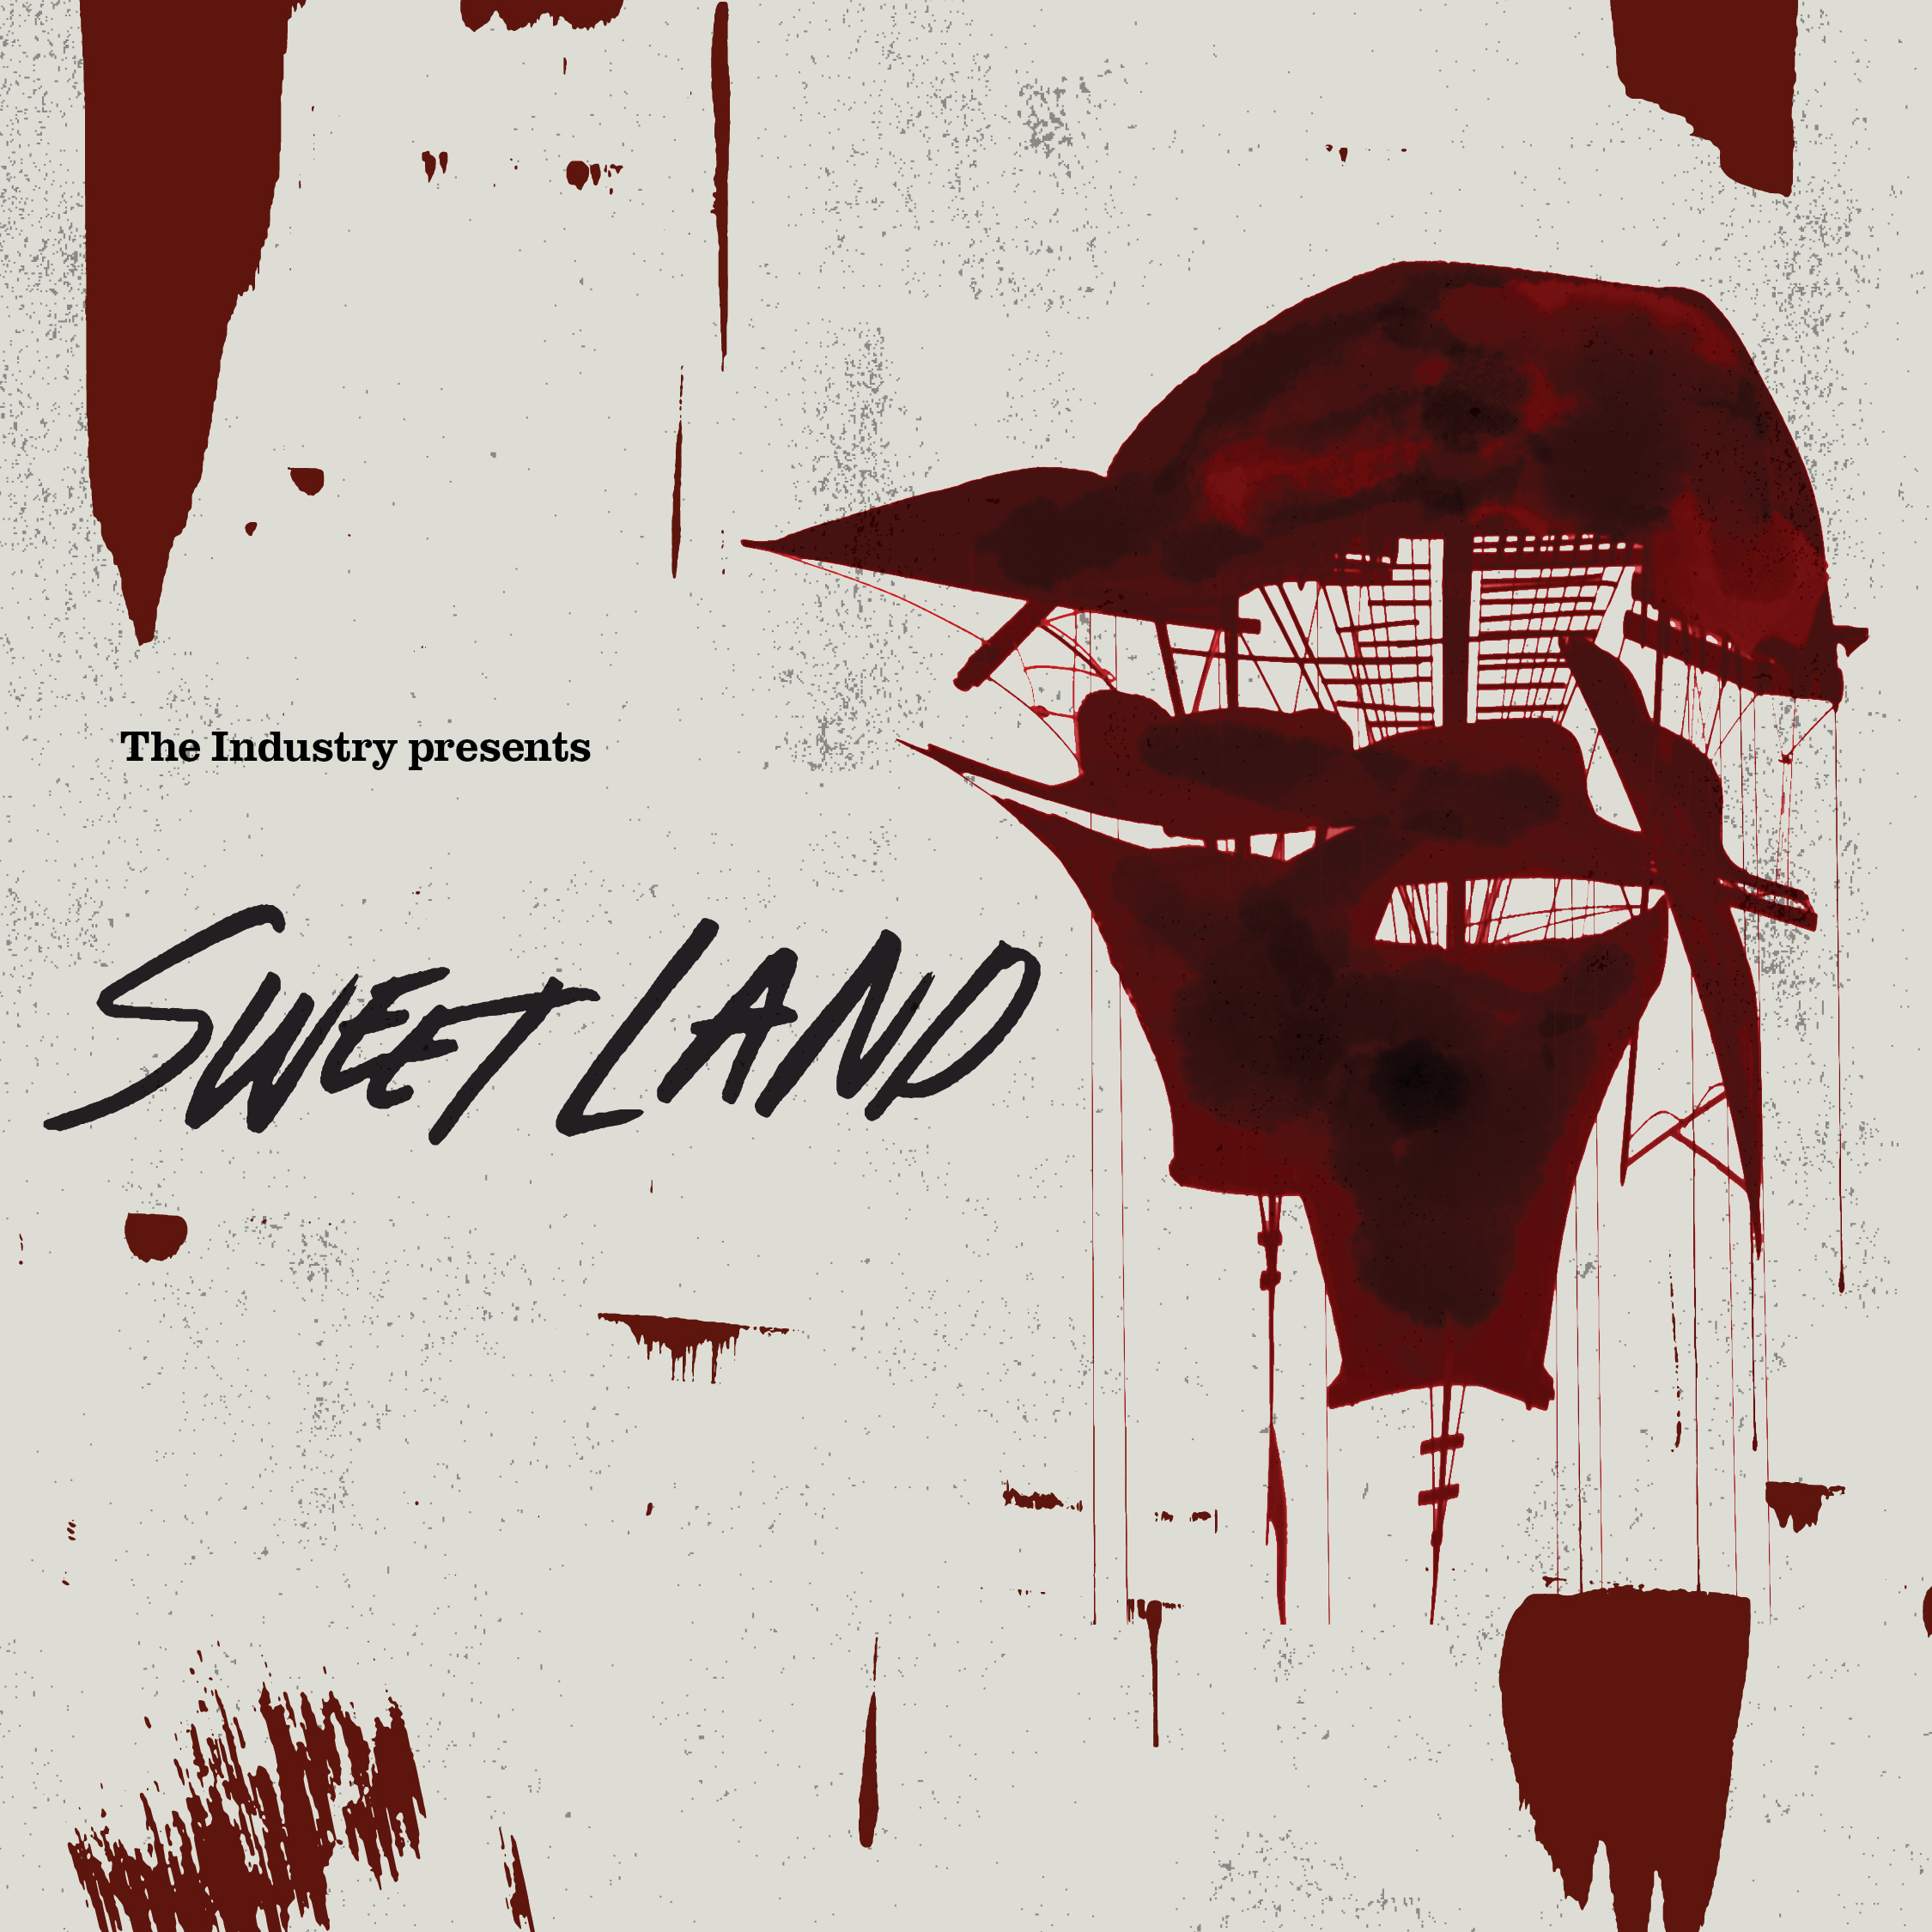 """Southland Sessions Episode Two """"The Industry Presents Sweet Land."""" Mayflower image and conceptual design by Cannupa Hanska Luger Lettering and graphic design by Visual Issues."""